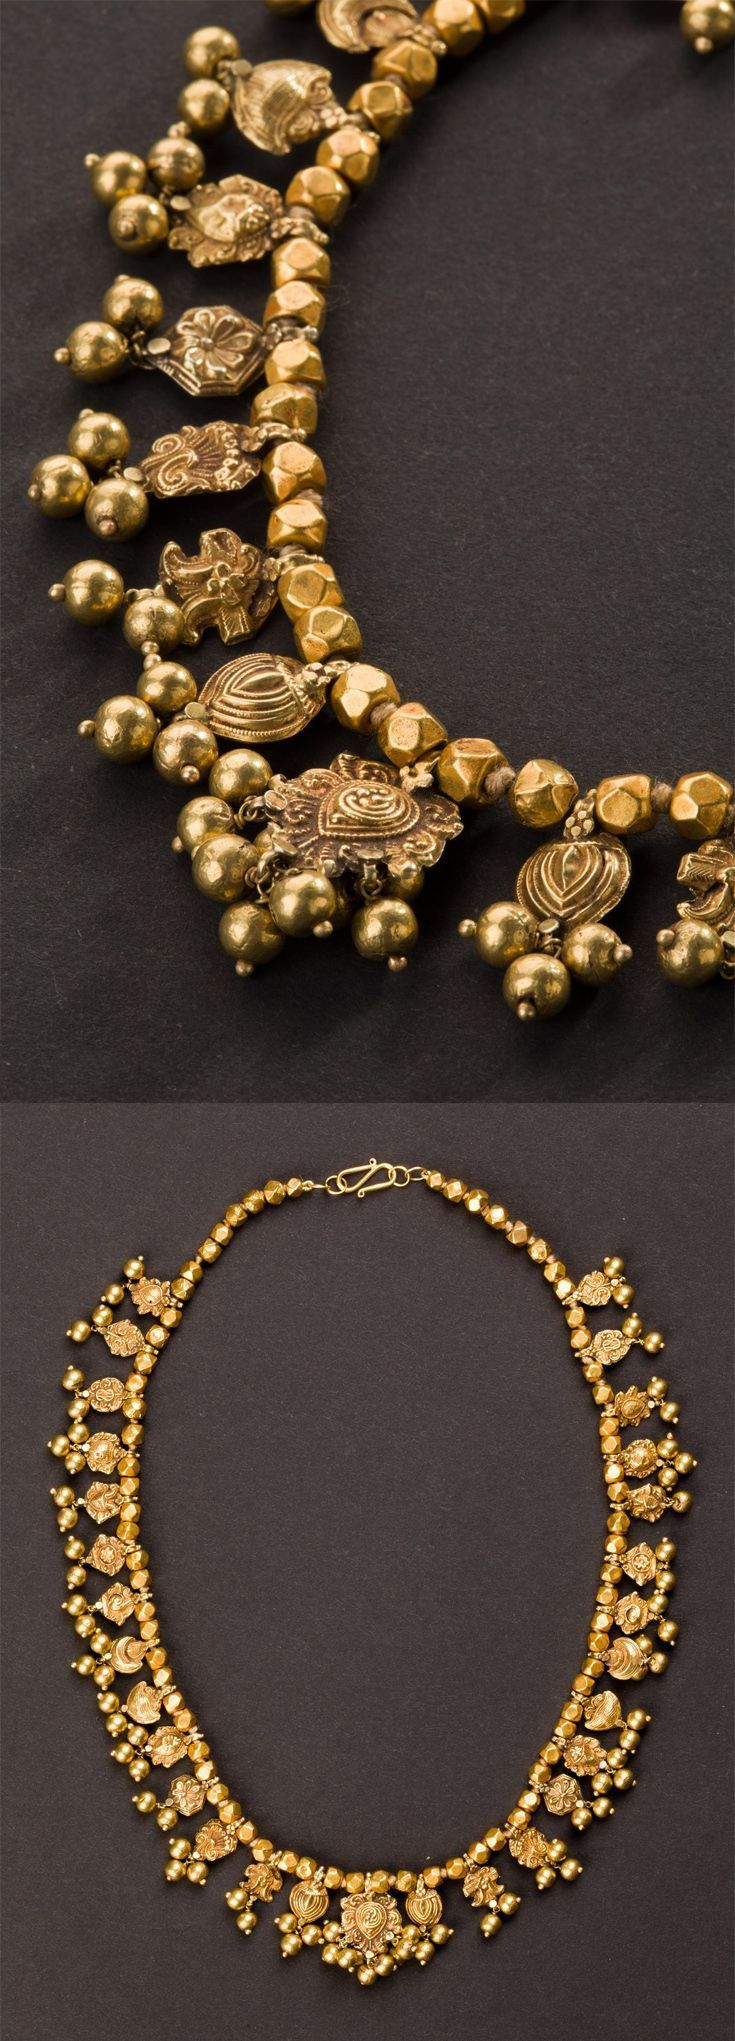 Traditional gold Maharashtrian bridal jewellery. Learn how to style your bridal look, visit www.bridelan.com #Bridelan